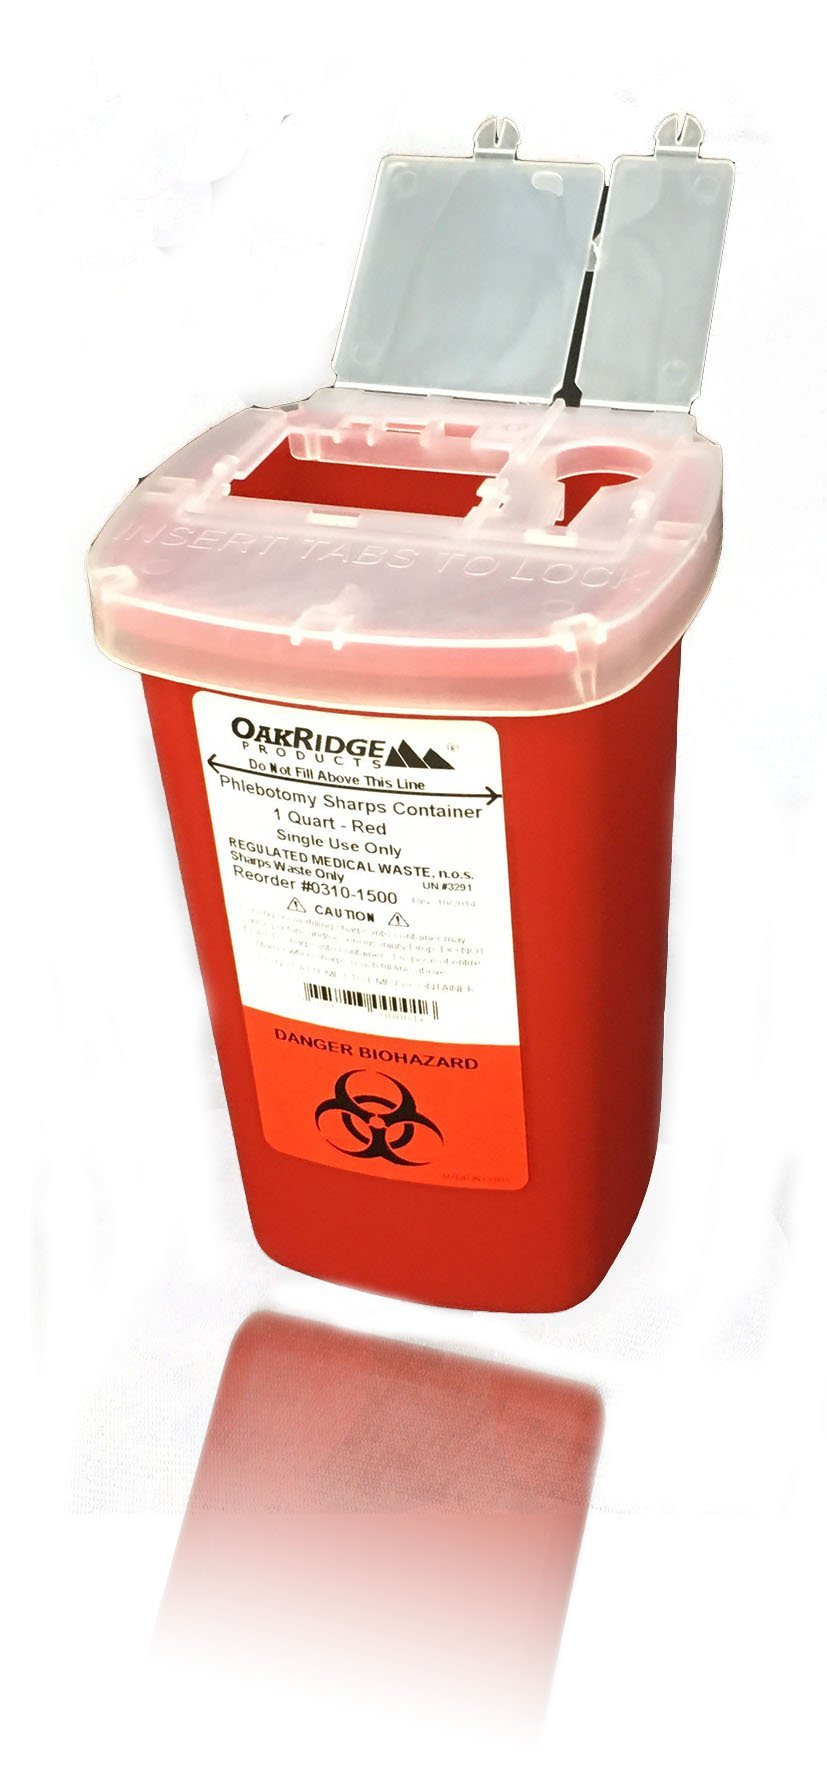 Oakridge Products 1 Quart Size Sharps and Needle Container | Integrated Needle unwinder